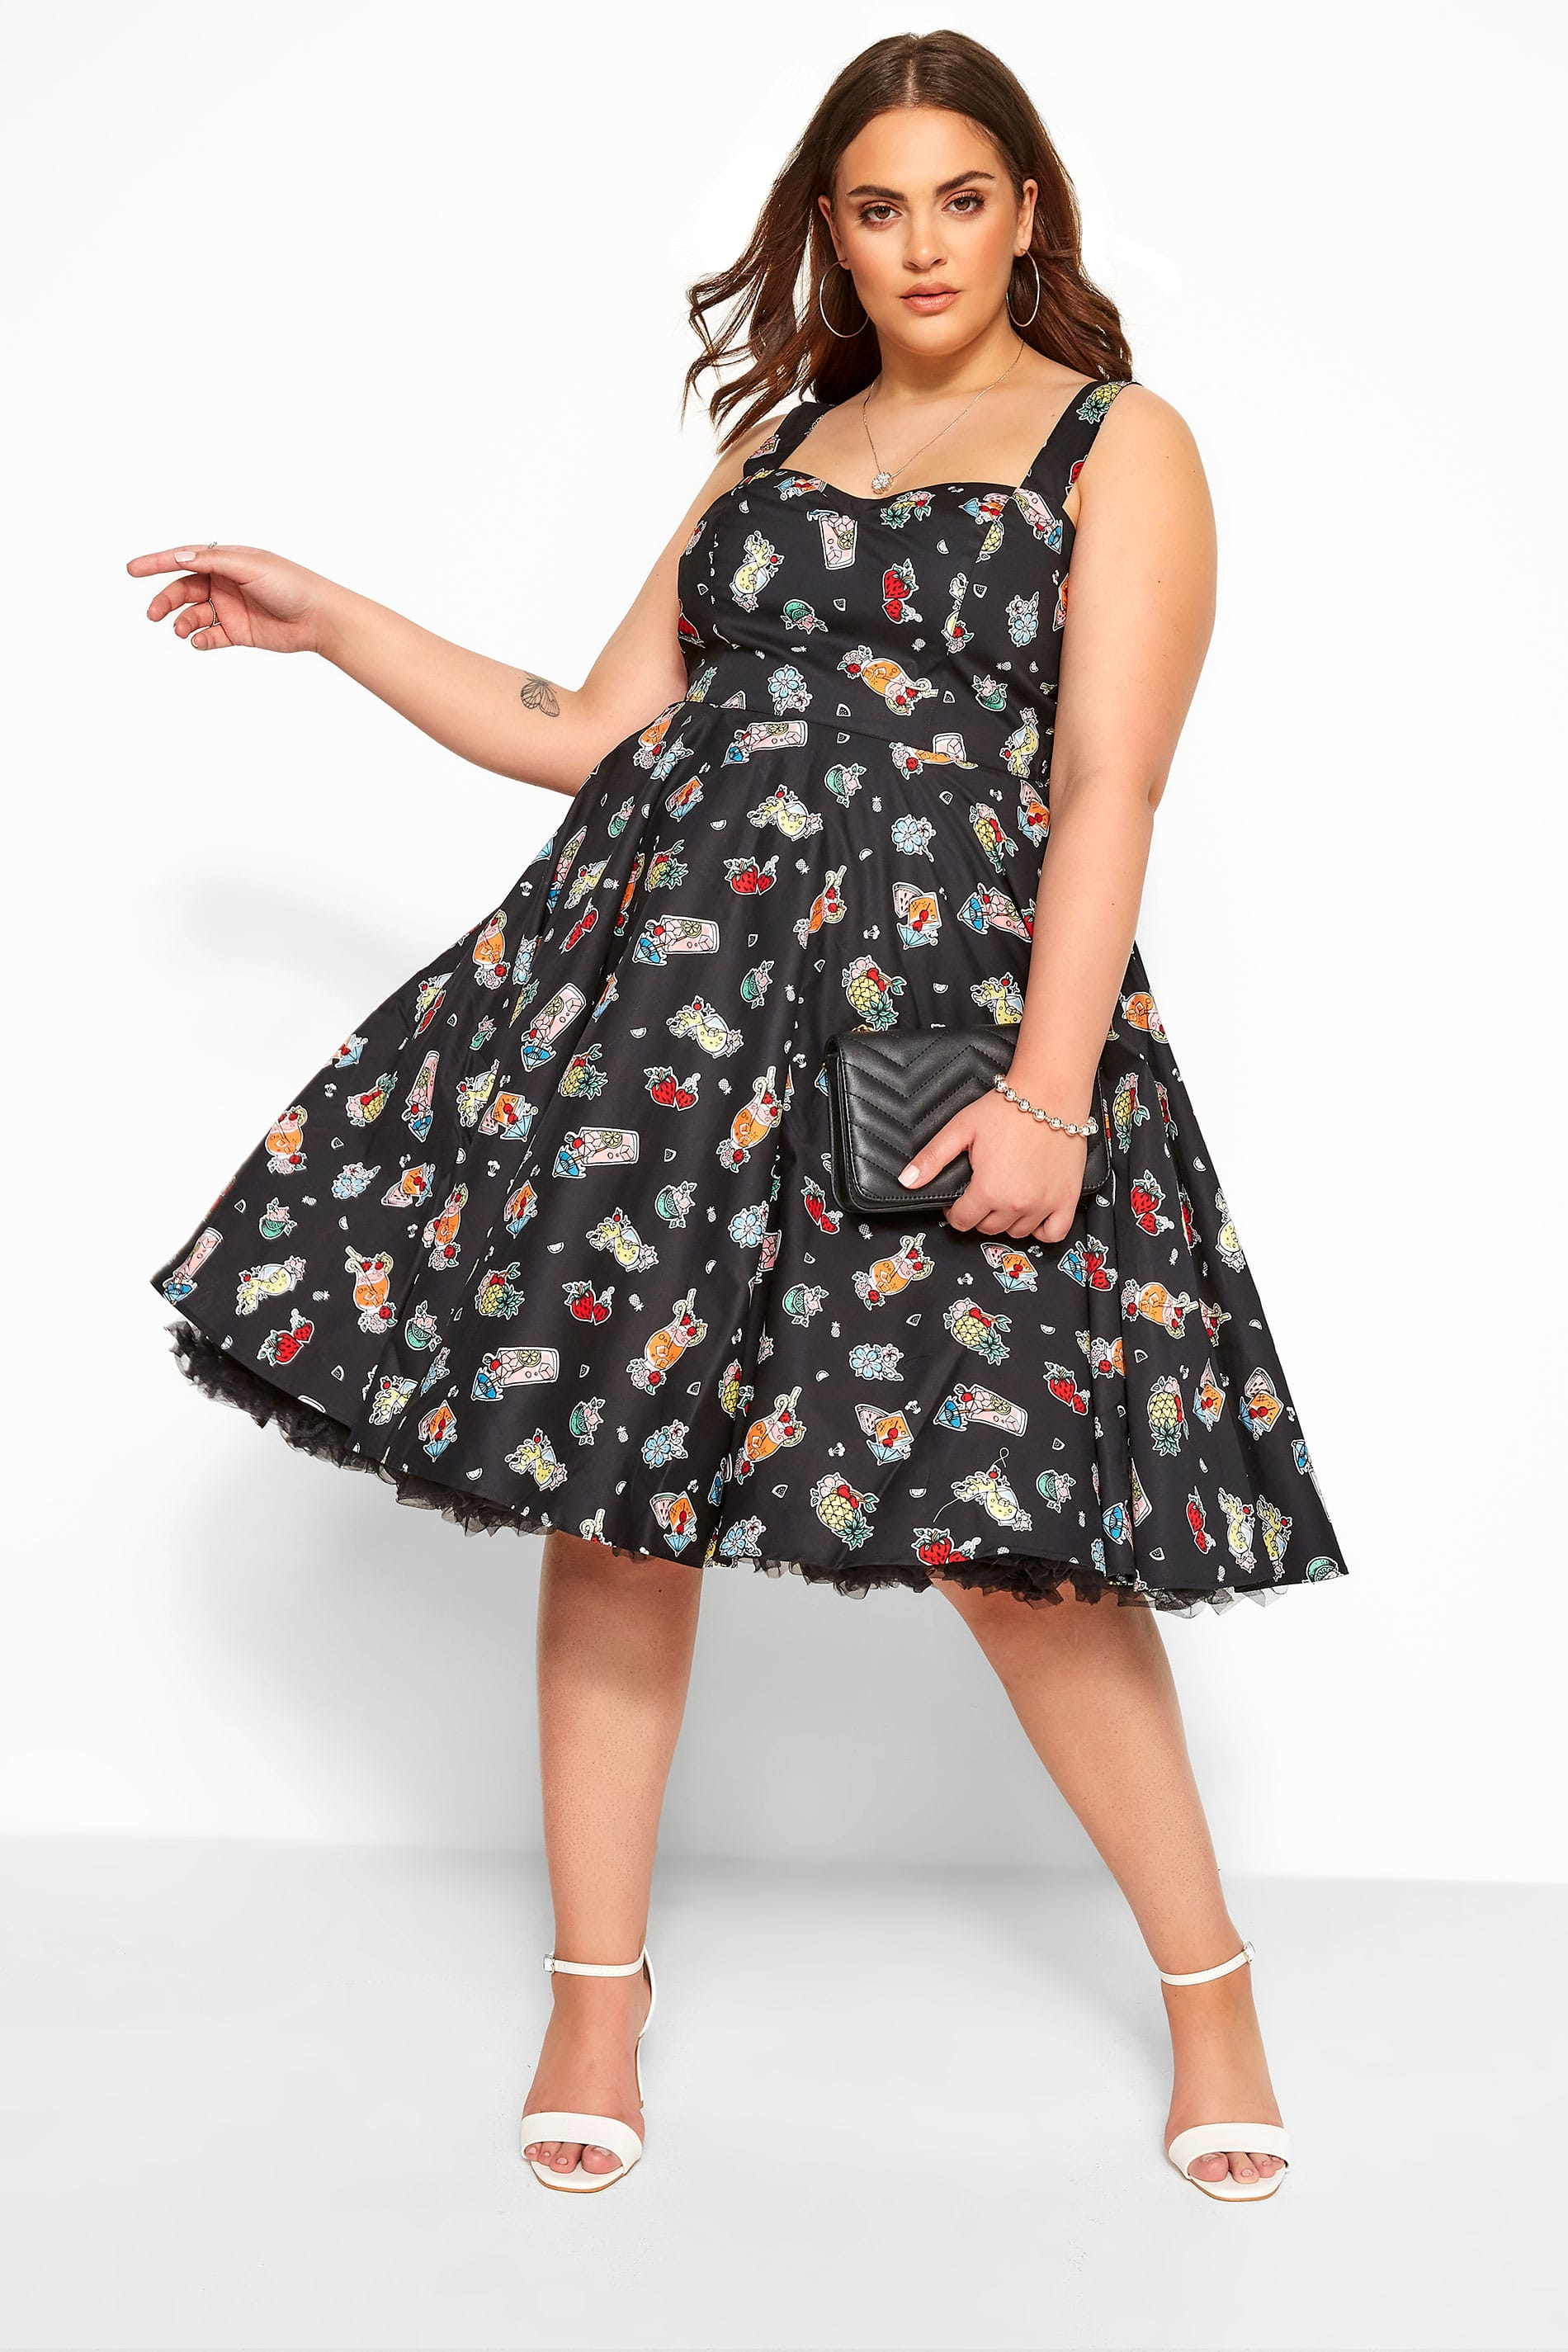 HELL BUNNY Black 'Pina Colada Tiki' Skater Dress